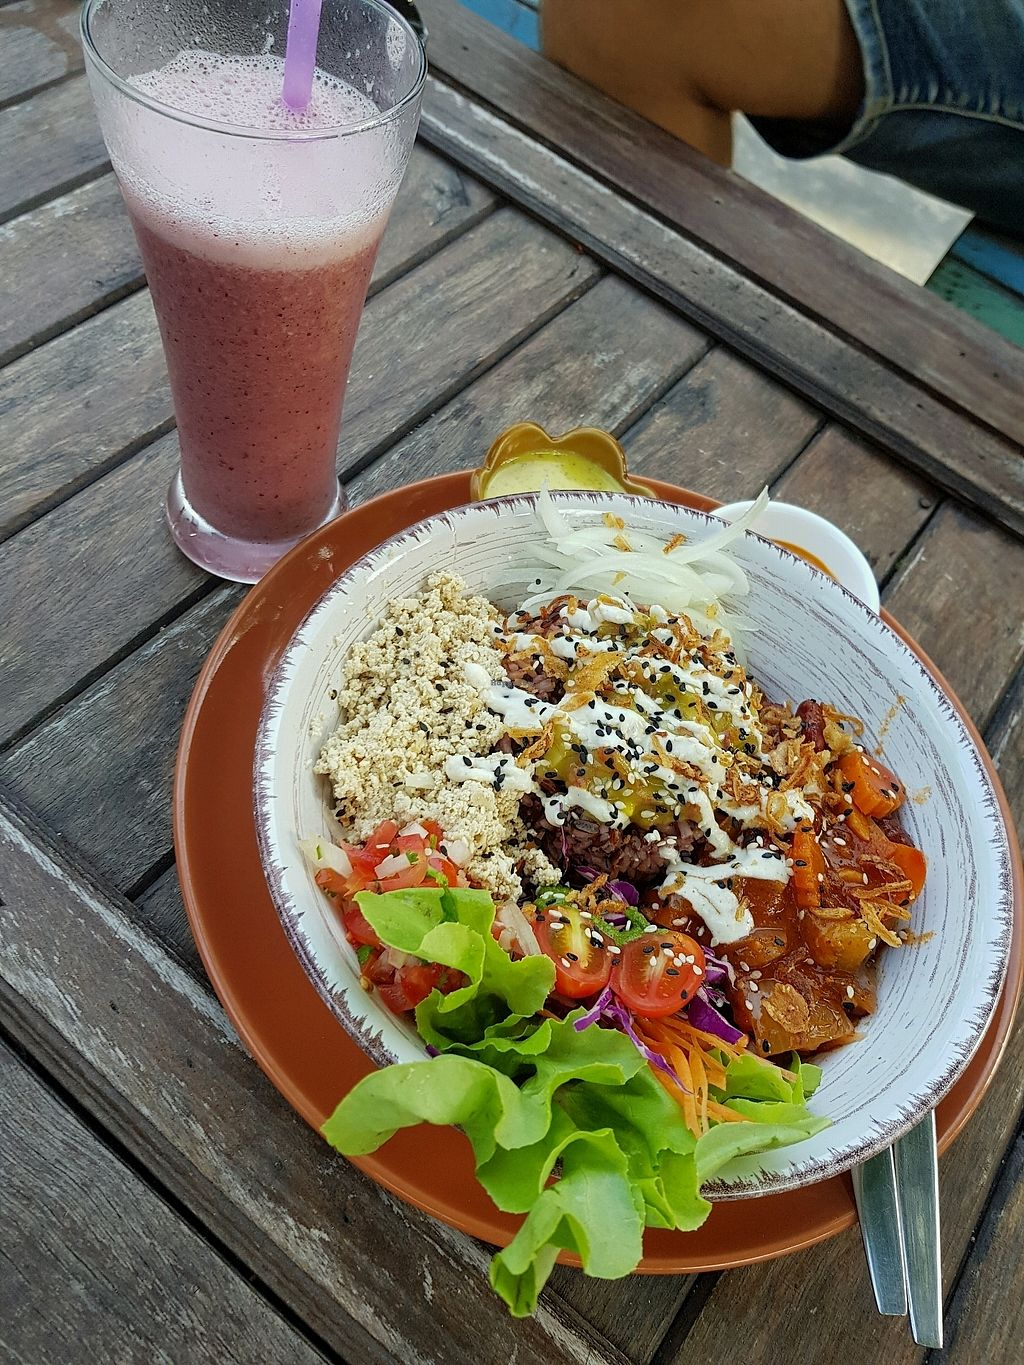 "Photo of Pure Vegan Heaven  by <a href=""/members/profile/NilsKahle"">NilsKahle</a> <br/>great healthy food <br/> October 10, 2017  - <a href='/contact/abuse/image/89736/314087'>Report</a>"